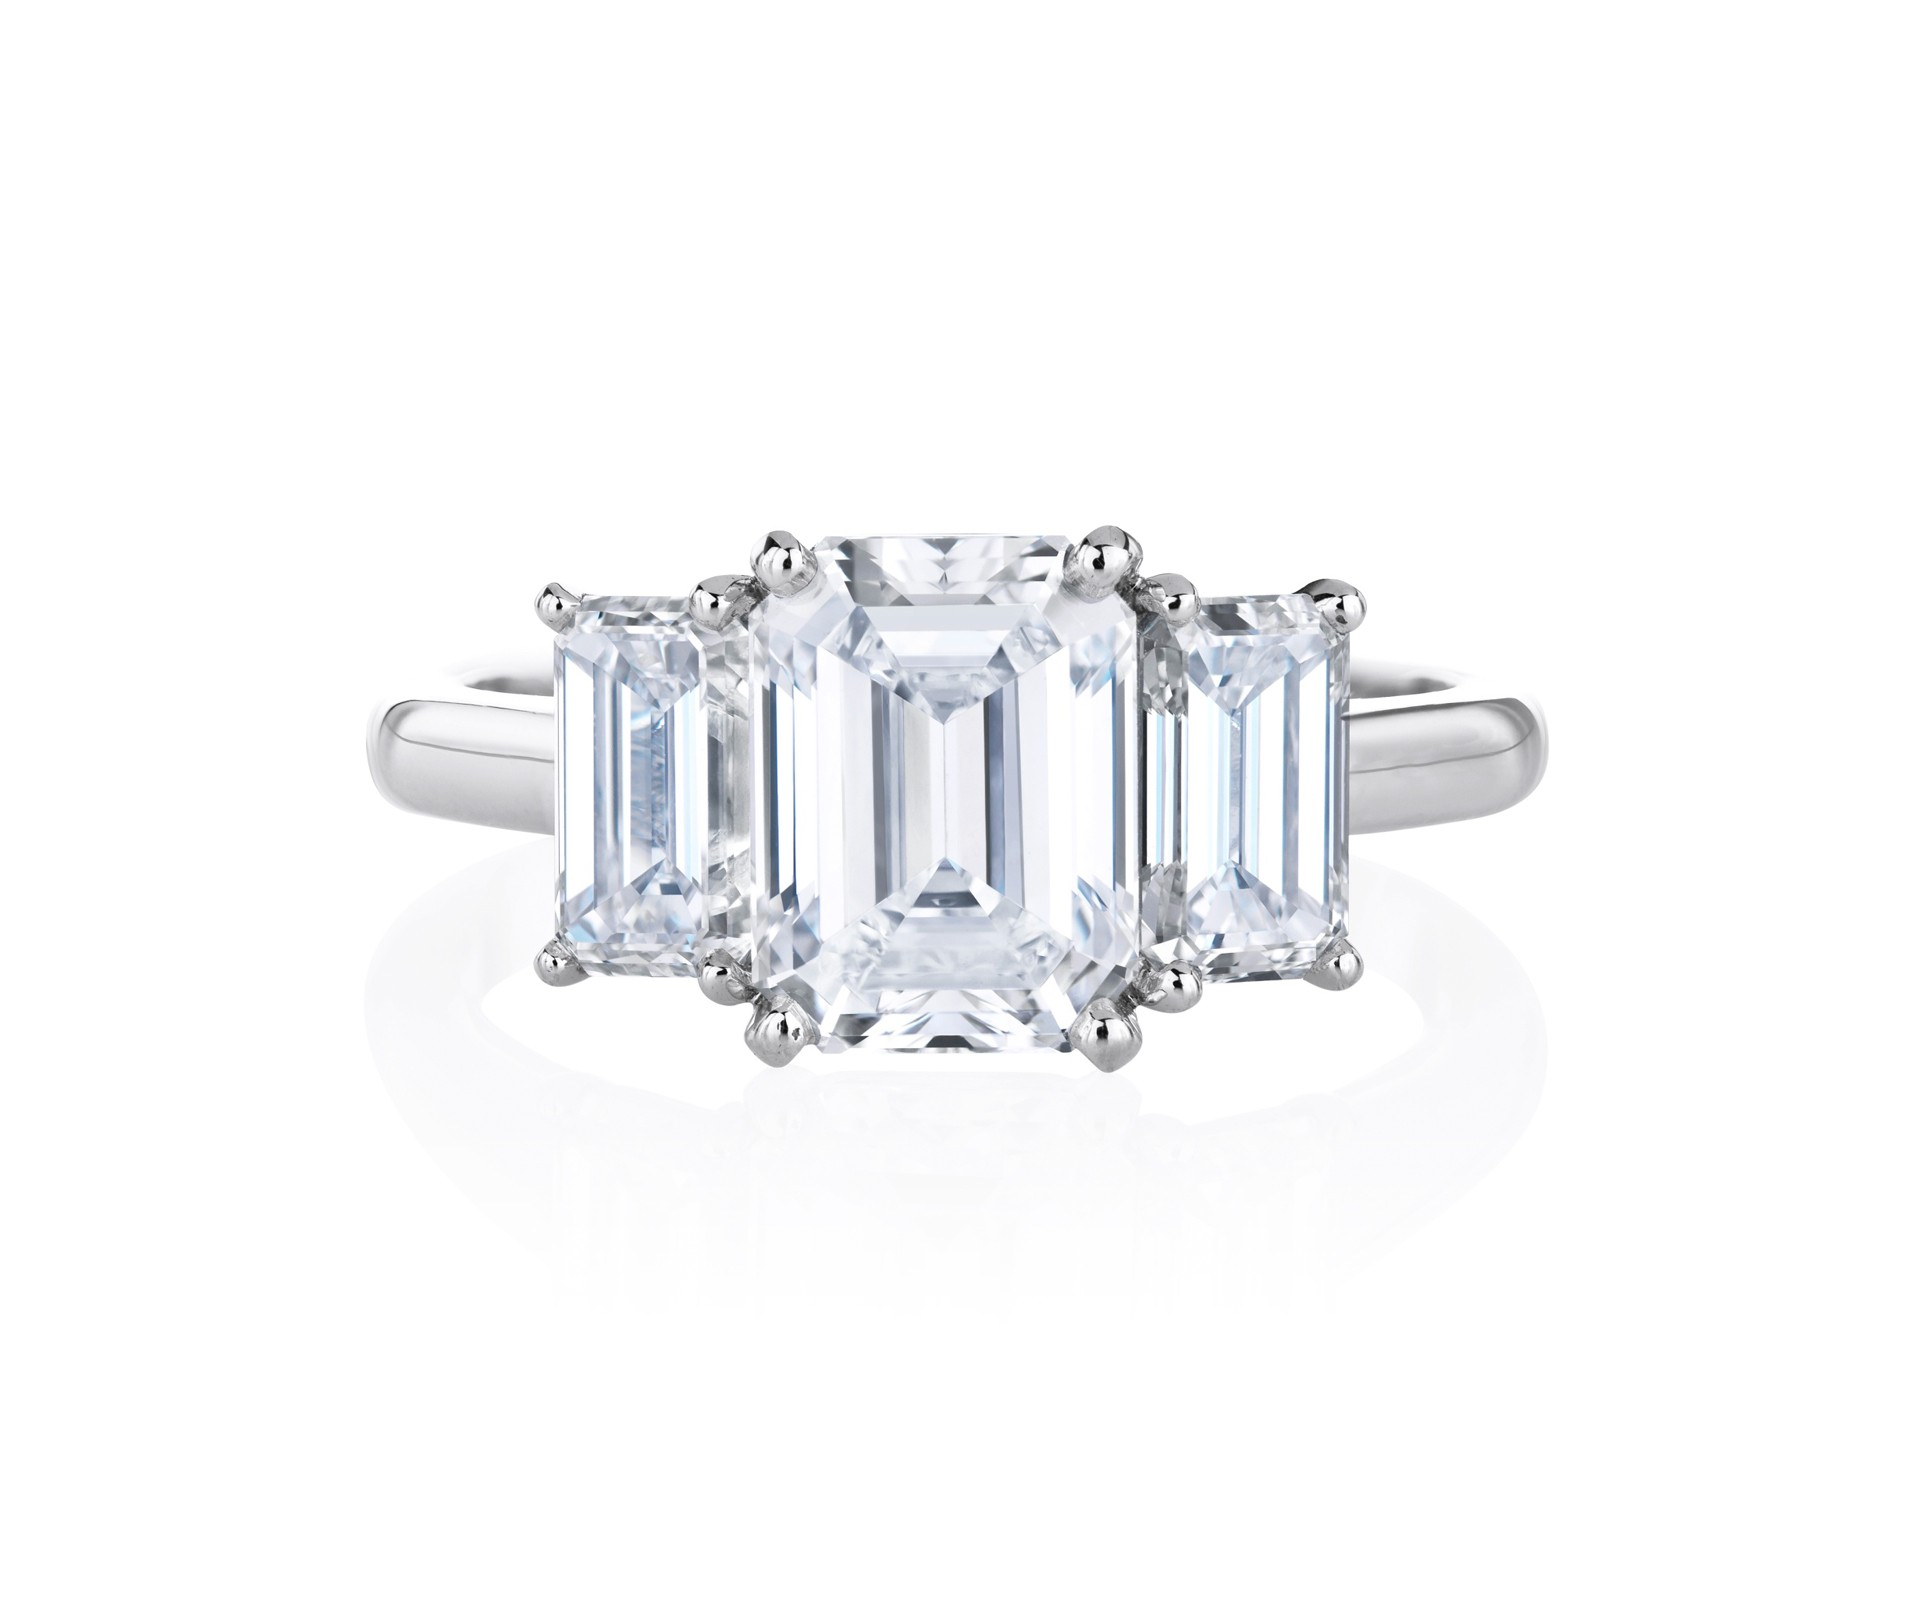 Db Classic Trio Emerald Cut Solitaire Ring Throughout Solitaire Emerald Cut Engagement Rings (View 10 of 25)